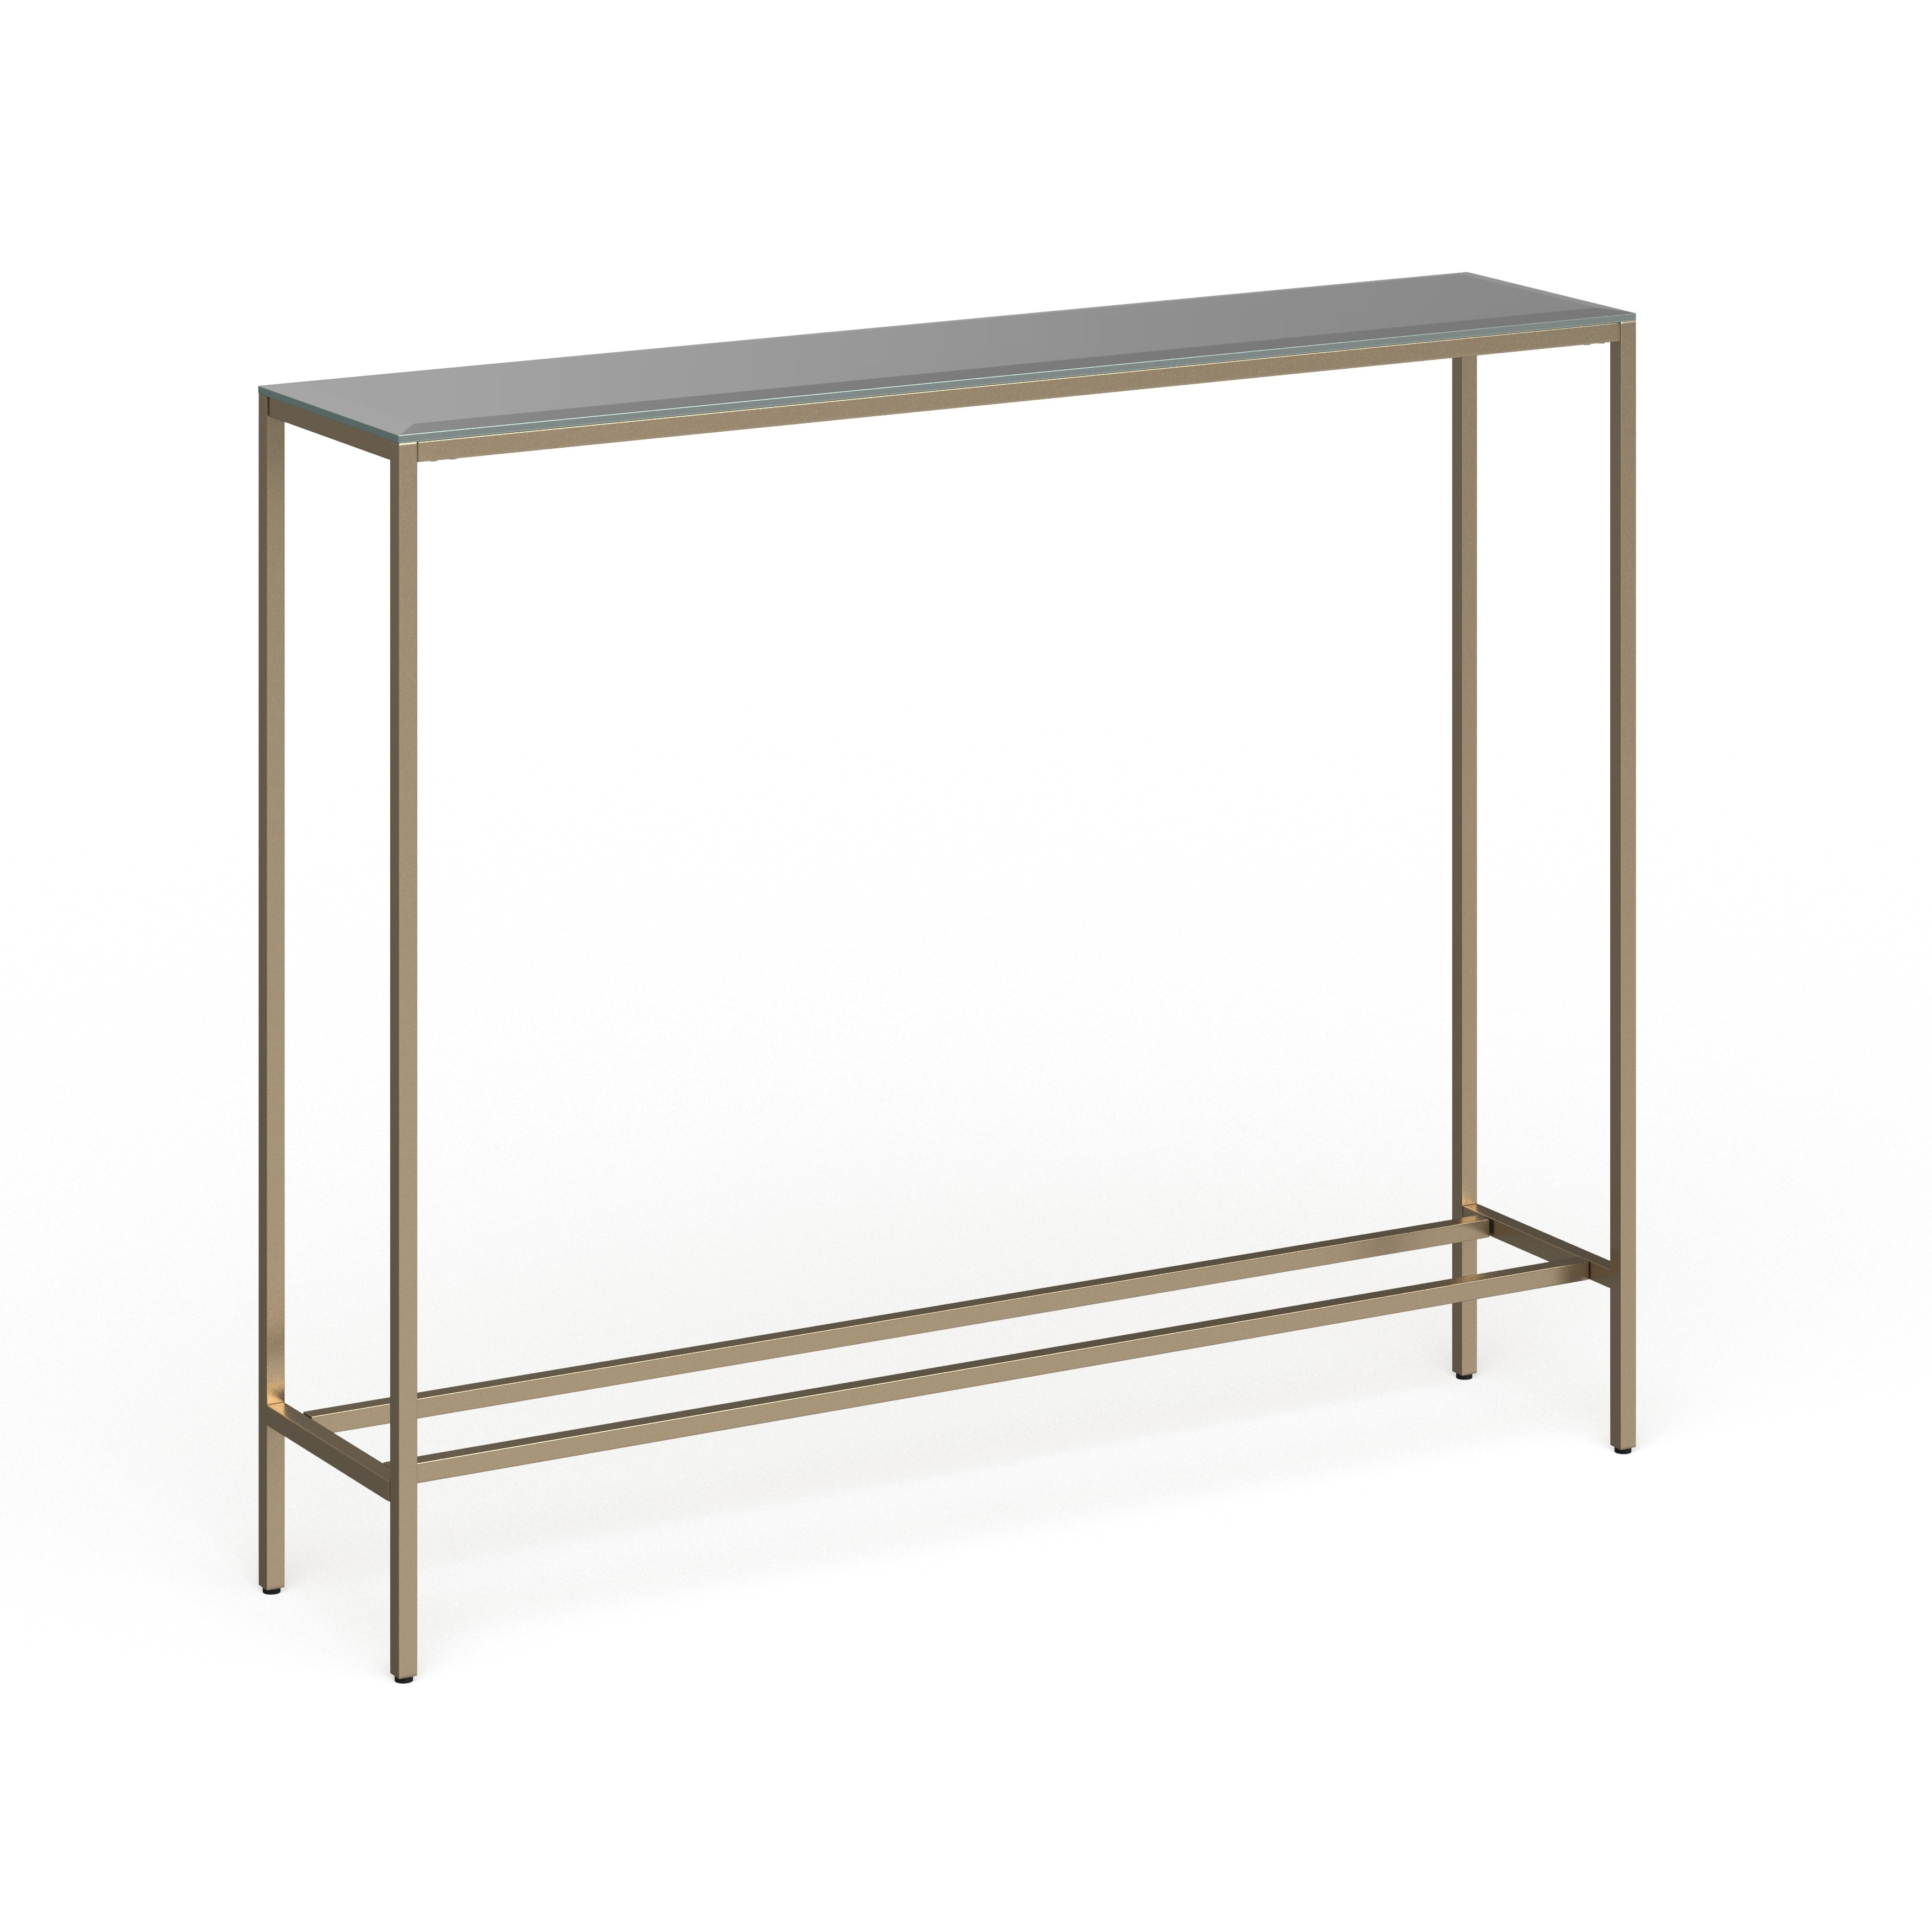 White Resin Folding Table, Shop Silver Orchid Ham Narrow Console Table Overstock 18157315 Black